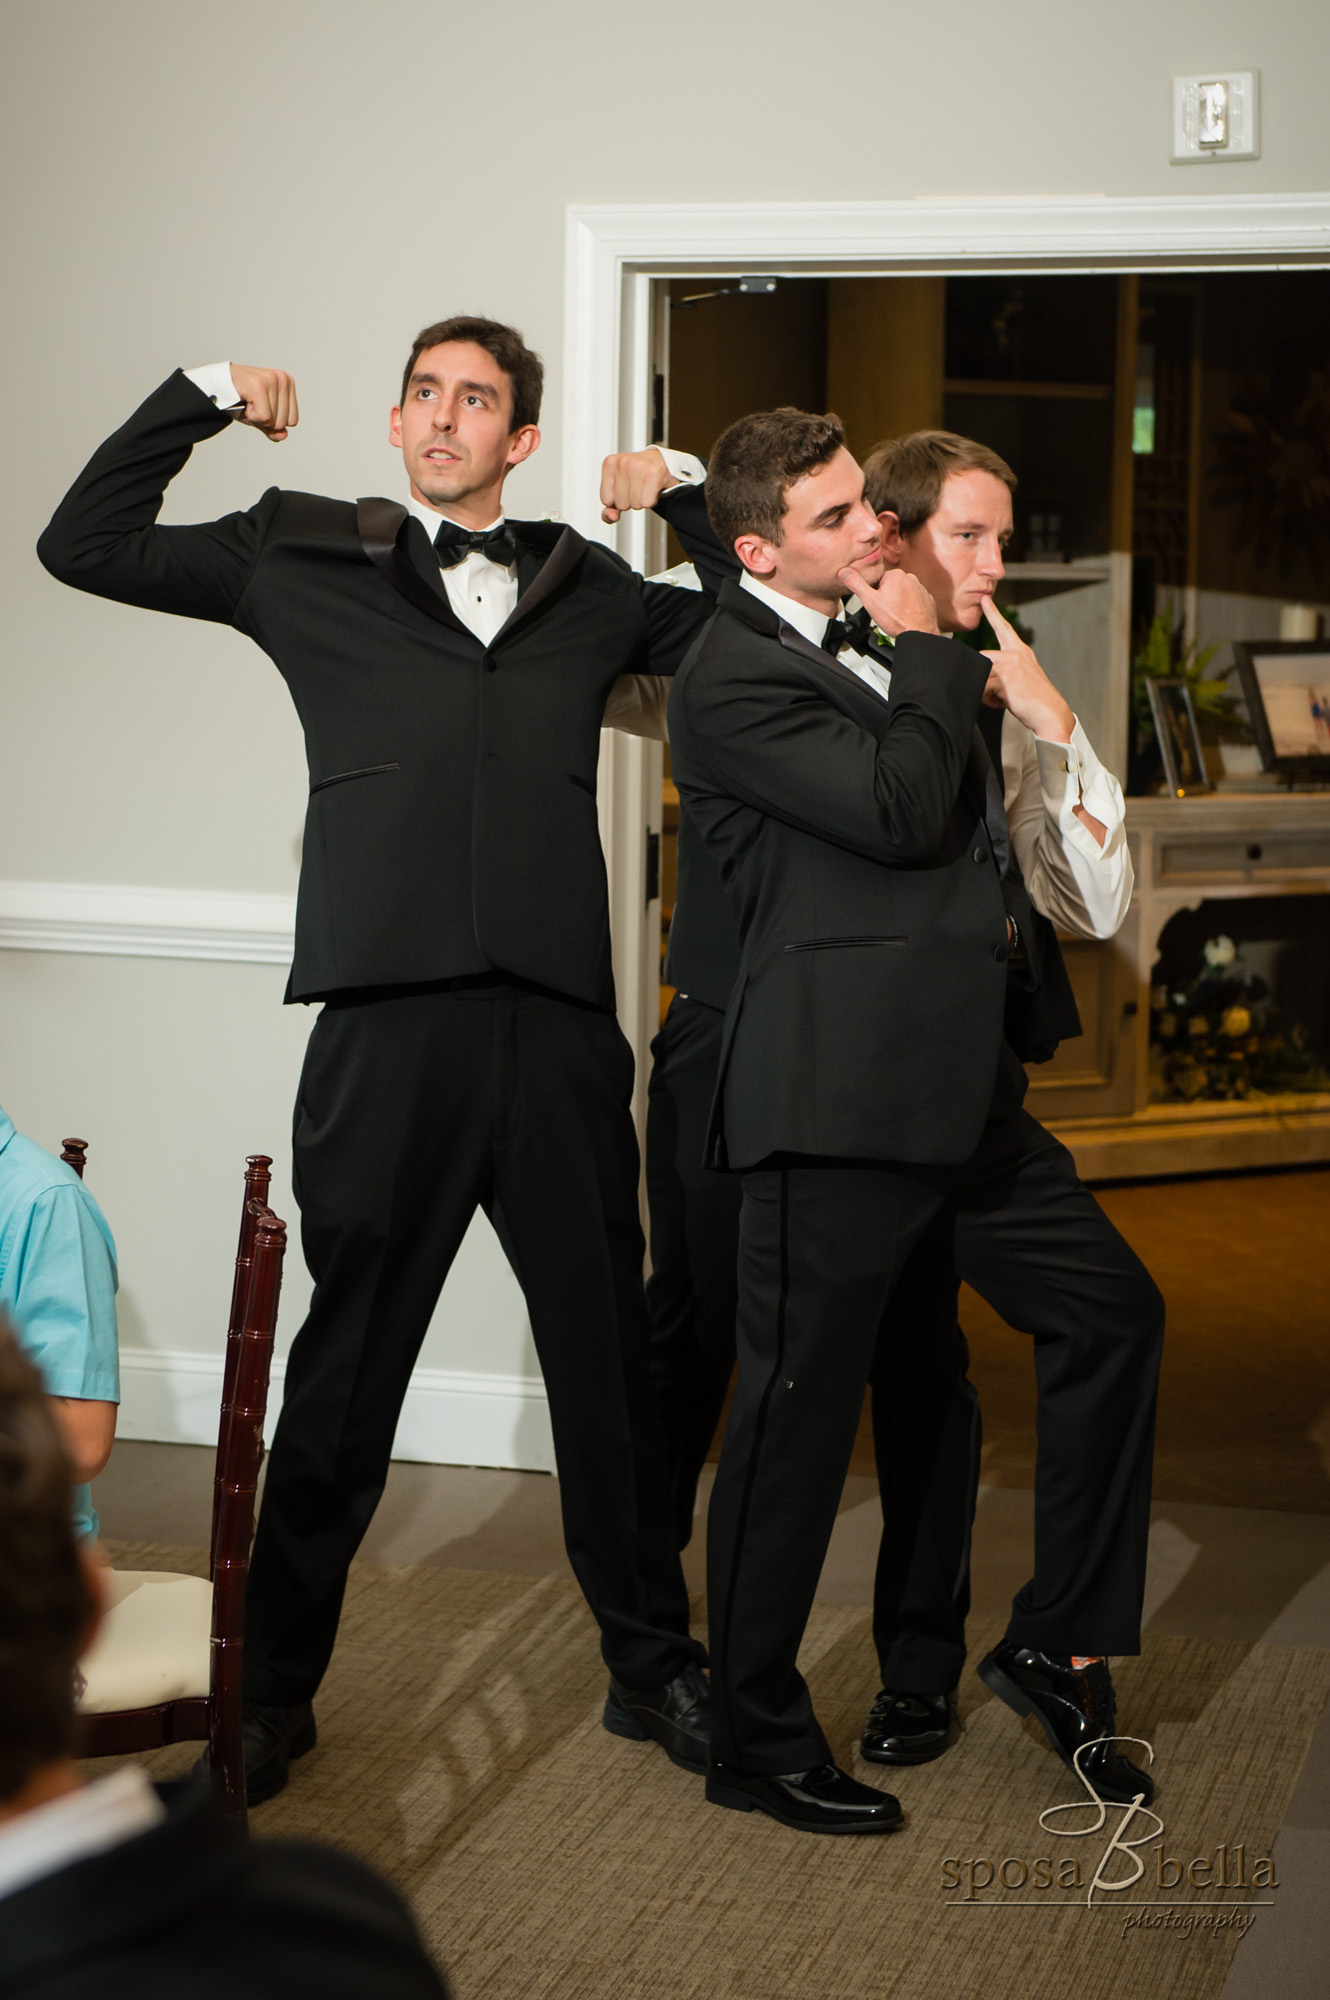 """To introduce their entergetic wedding party, Chris & Courtney chose the song """"Cant Stop the Feeling"""" by Justin Timberlake"""